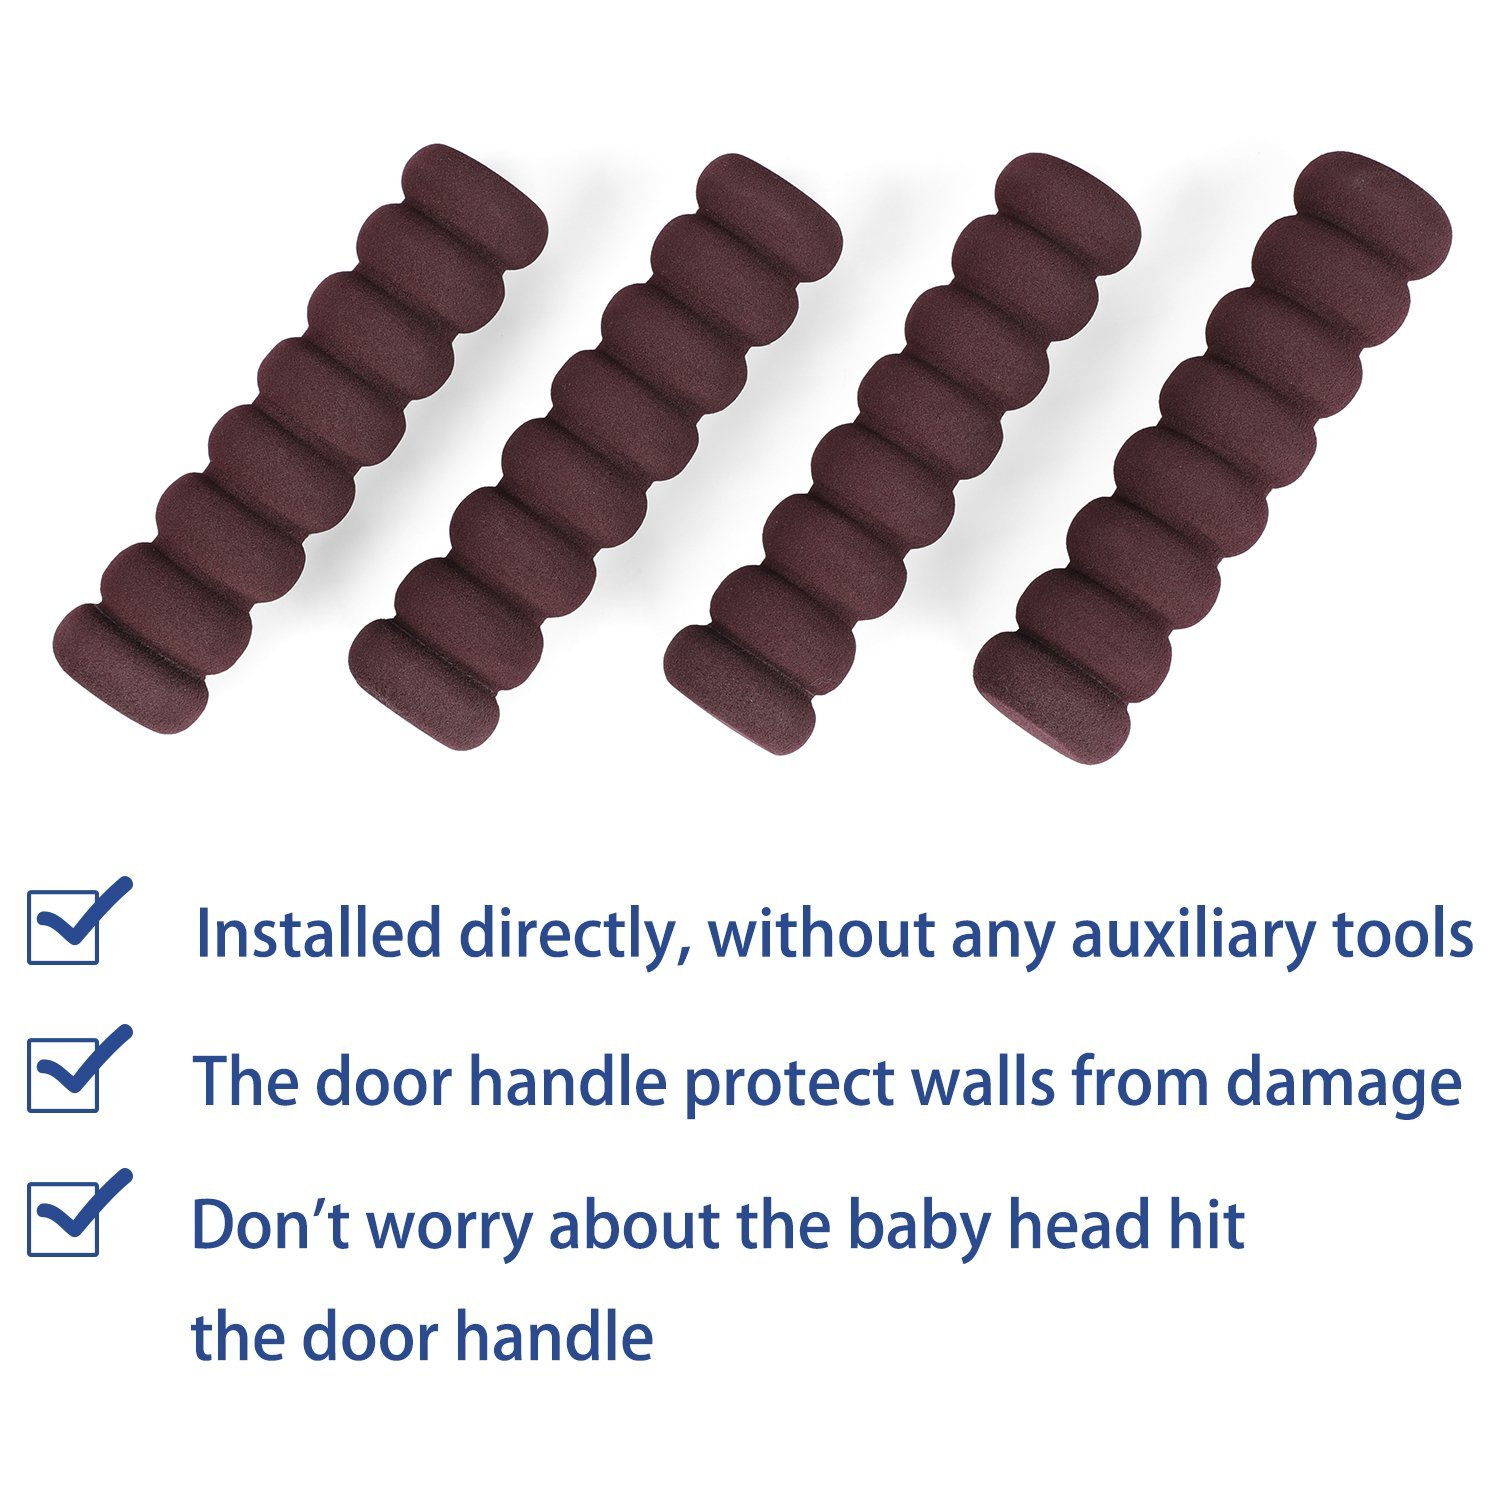 Door Handle Covers Anti-Collision for Child Safety Soft Foam Rubber Anti-Static Outside Door Handle Protective for Direct Sunlight Harm or Injury 4 pcs Brown